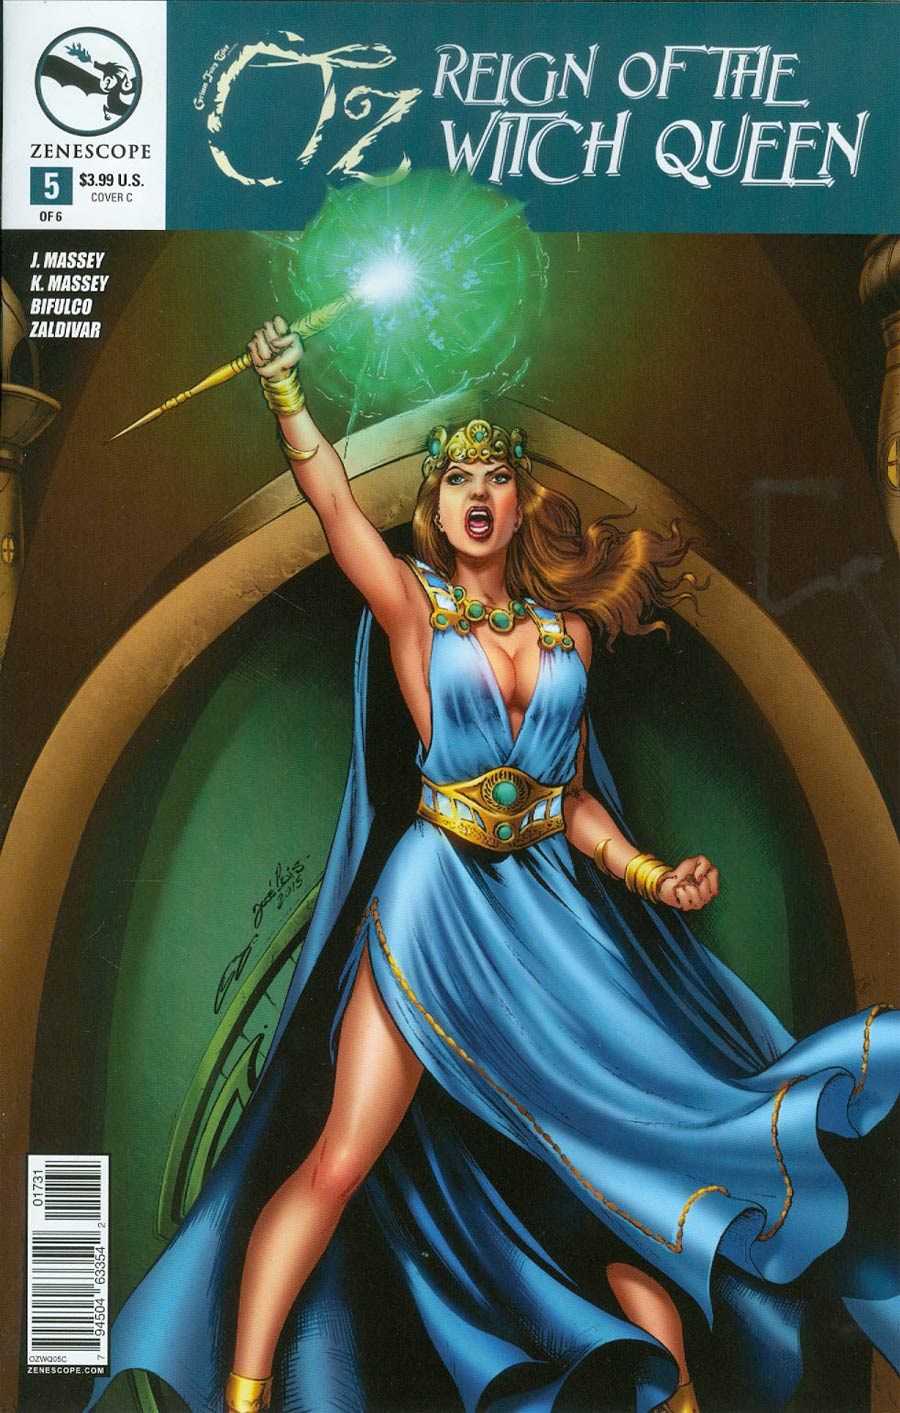 Grimm Fairy Tales Presents Oz Reign Of The Witch Queen #5 Cover C Jose Luis